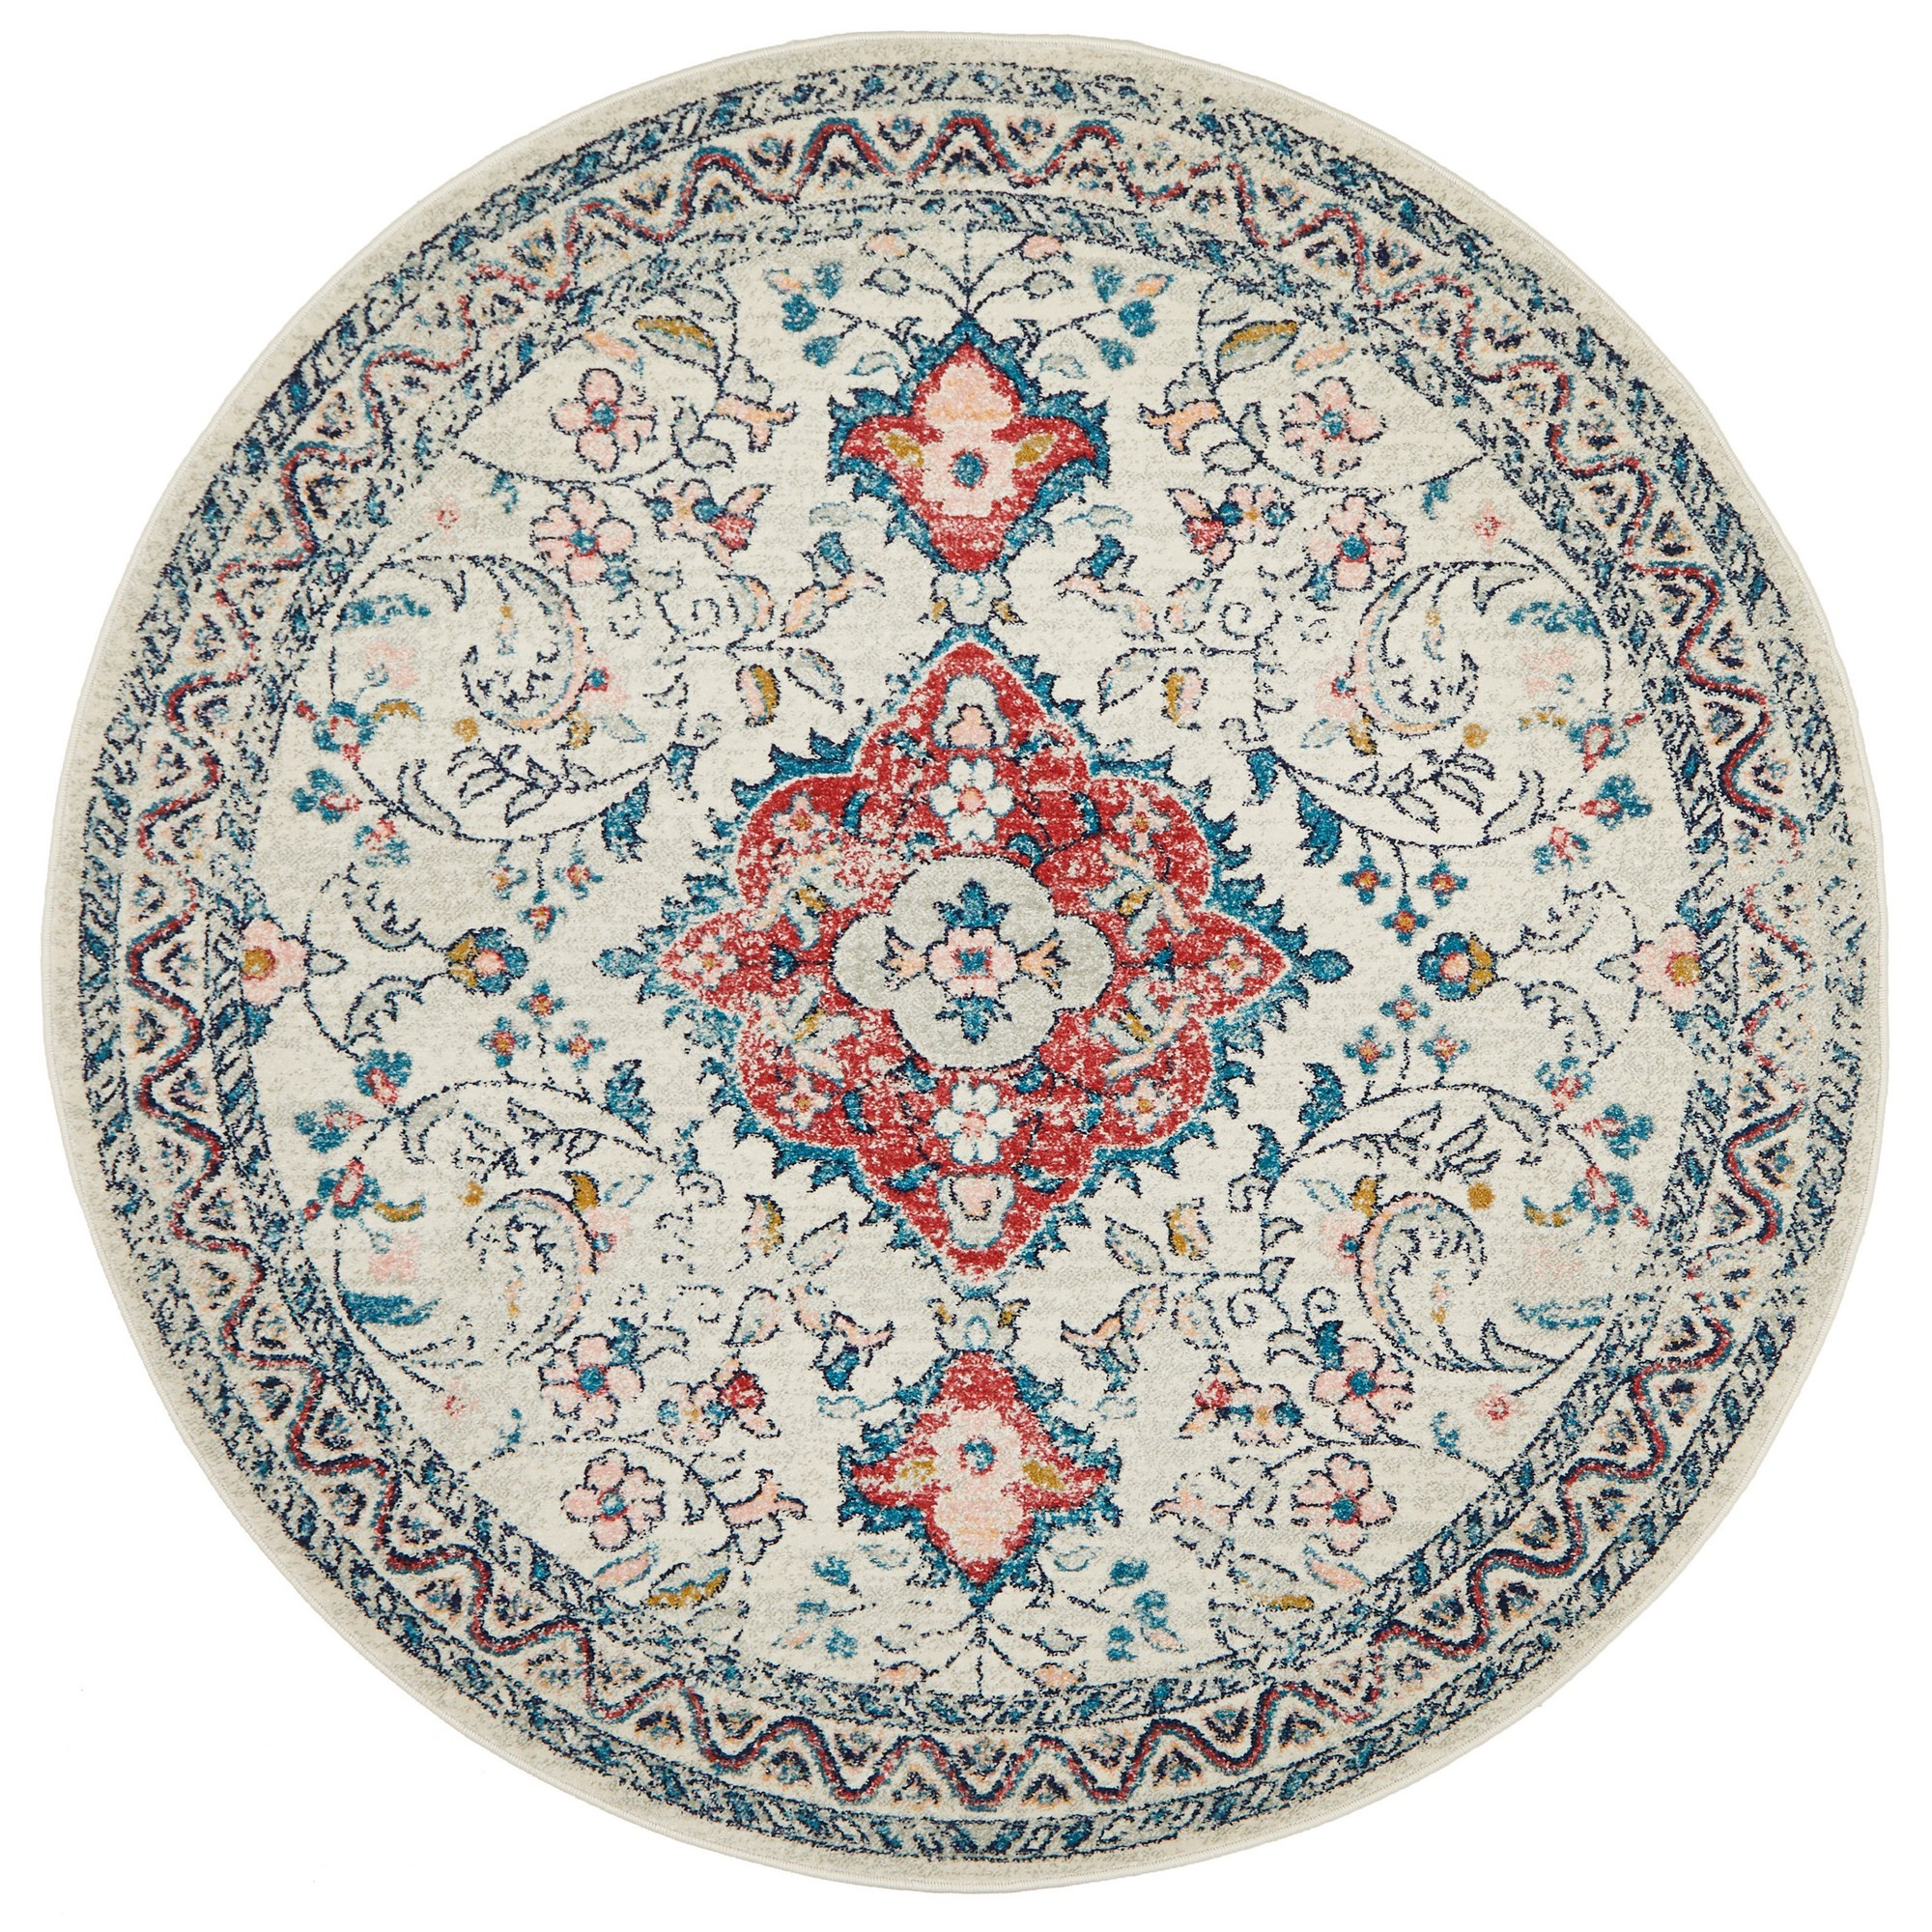 Avenue No.705 Tribal Round Rug, 240cm, Off White / Red